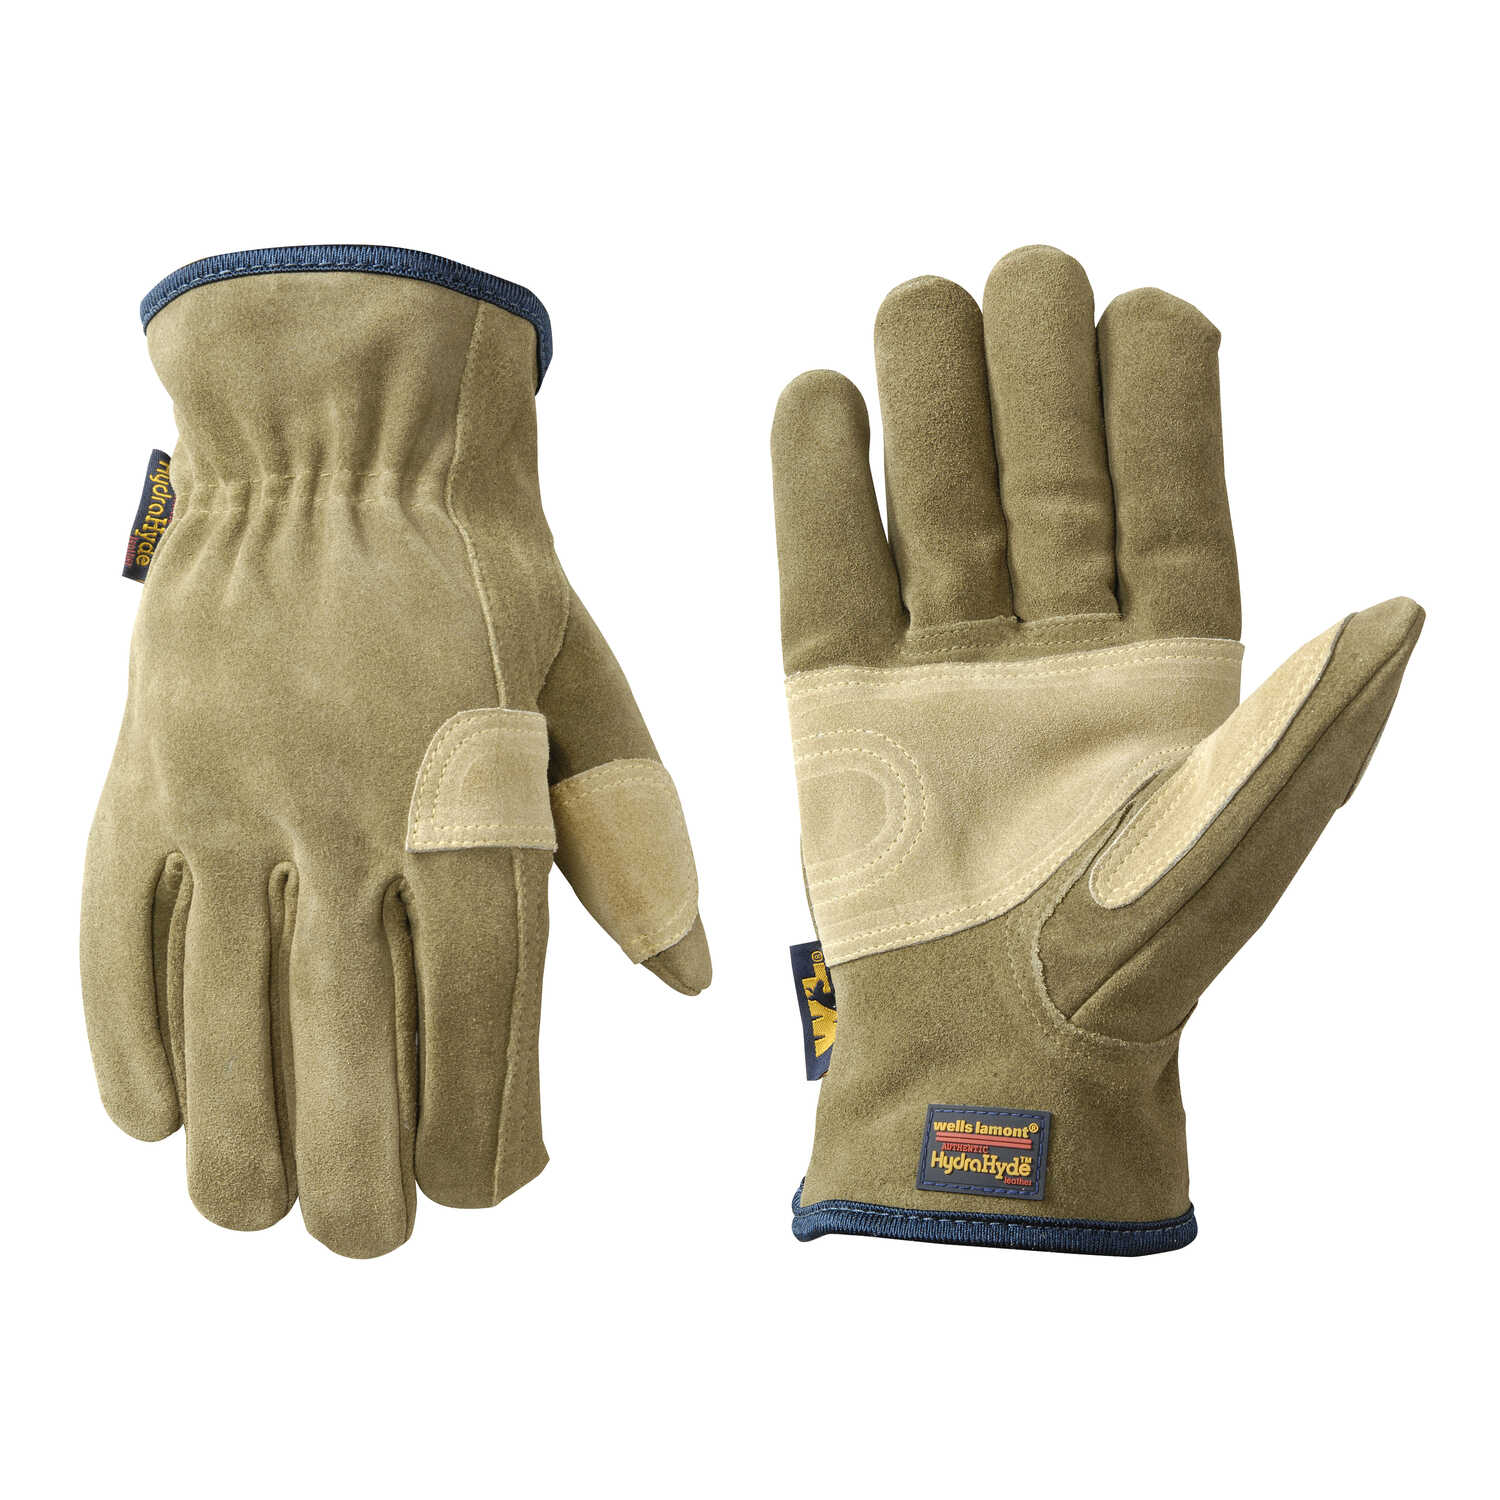 Wells Lamont  Men's  Leather  Work Gloves  Tan  XL